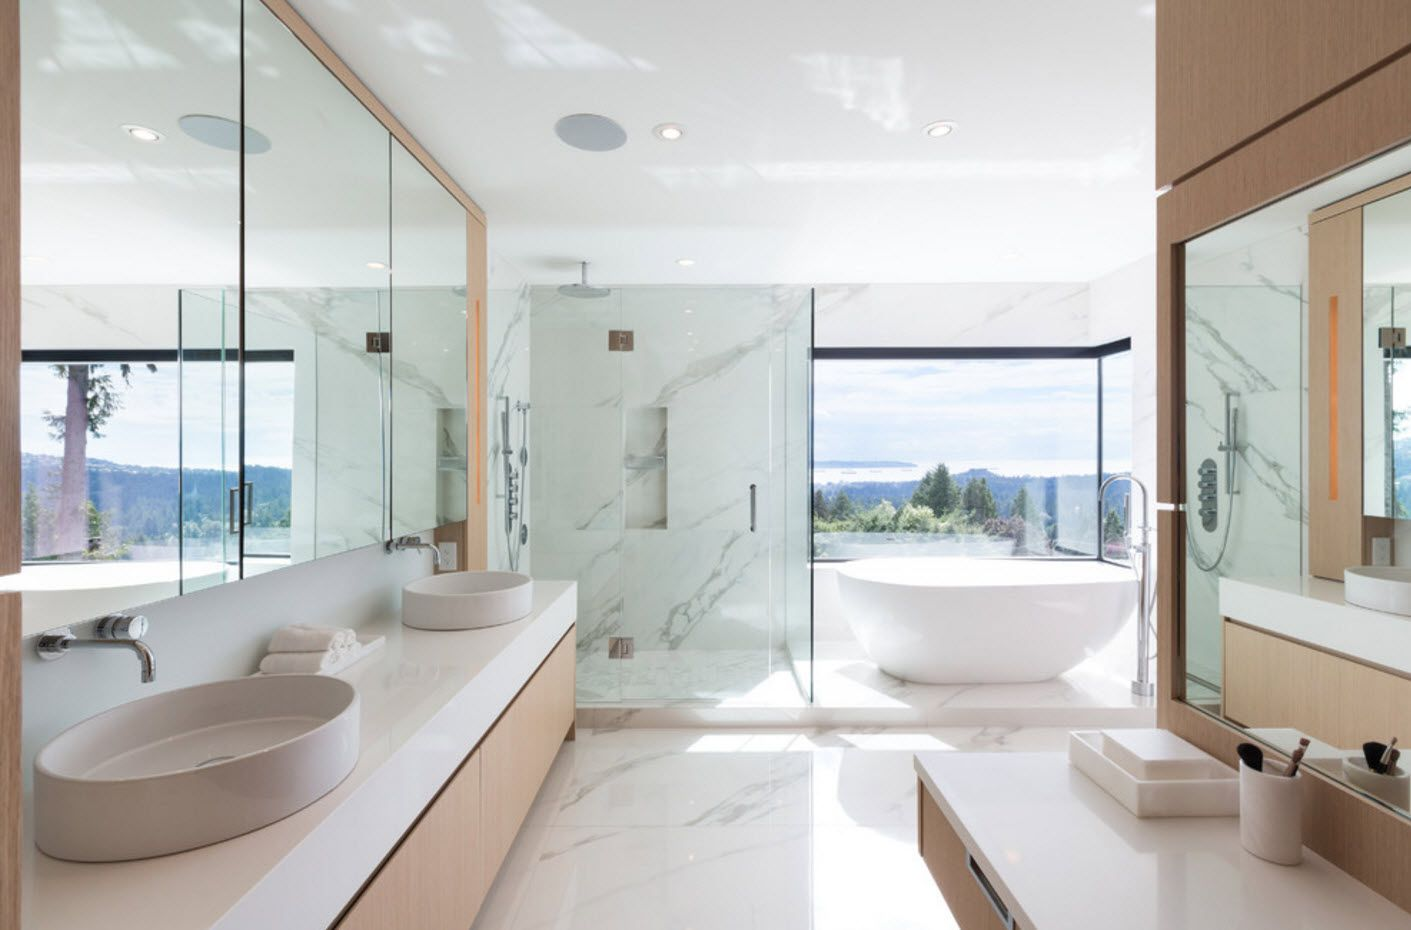 White modern top-notch design of the bathroom with glass shower zone